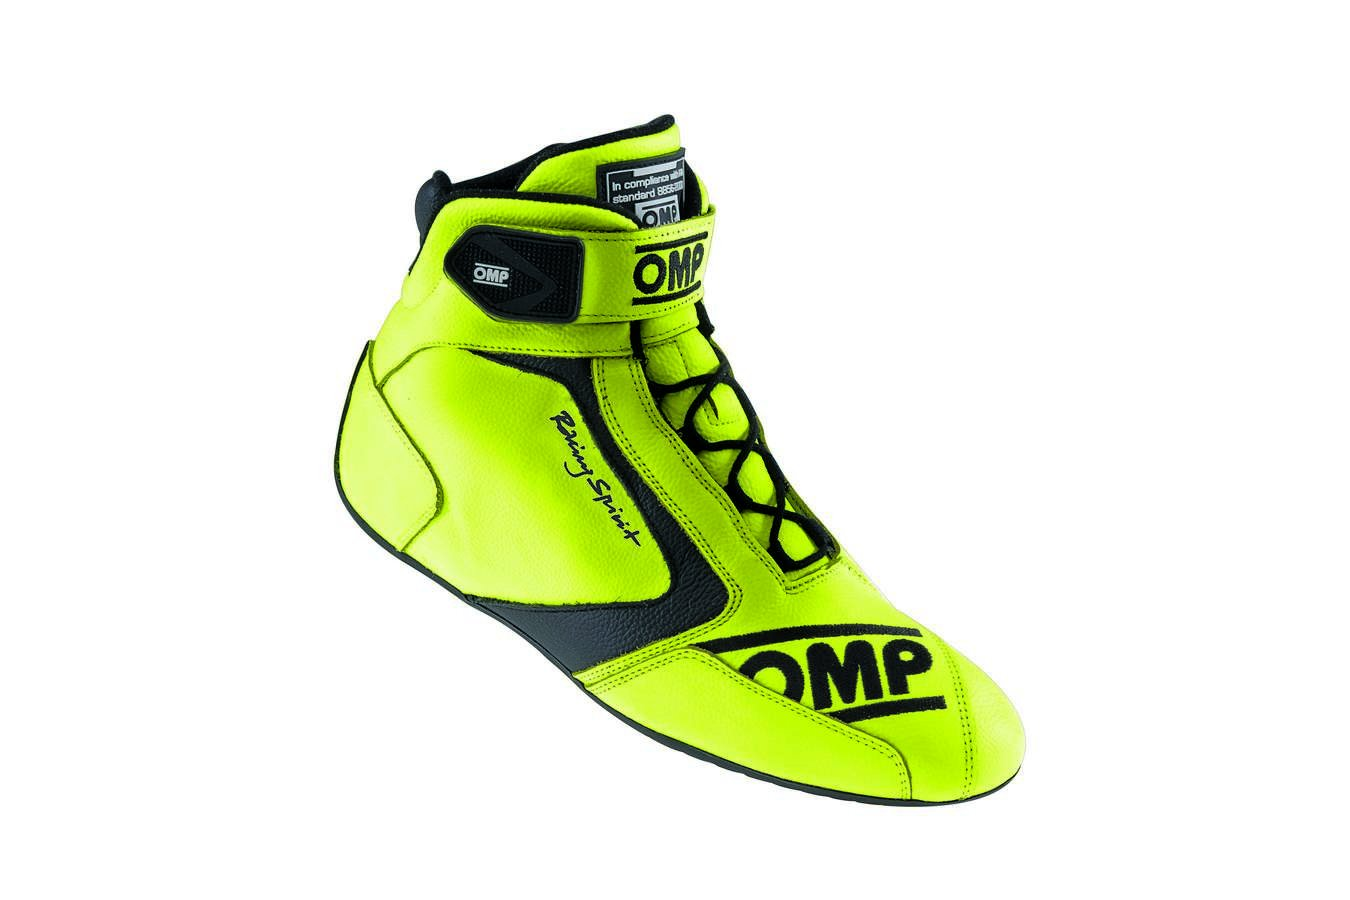 OMP IC//80109943 40th Anniversary Shoes, Lime, Size 43